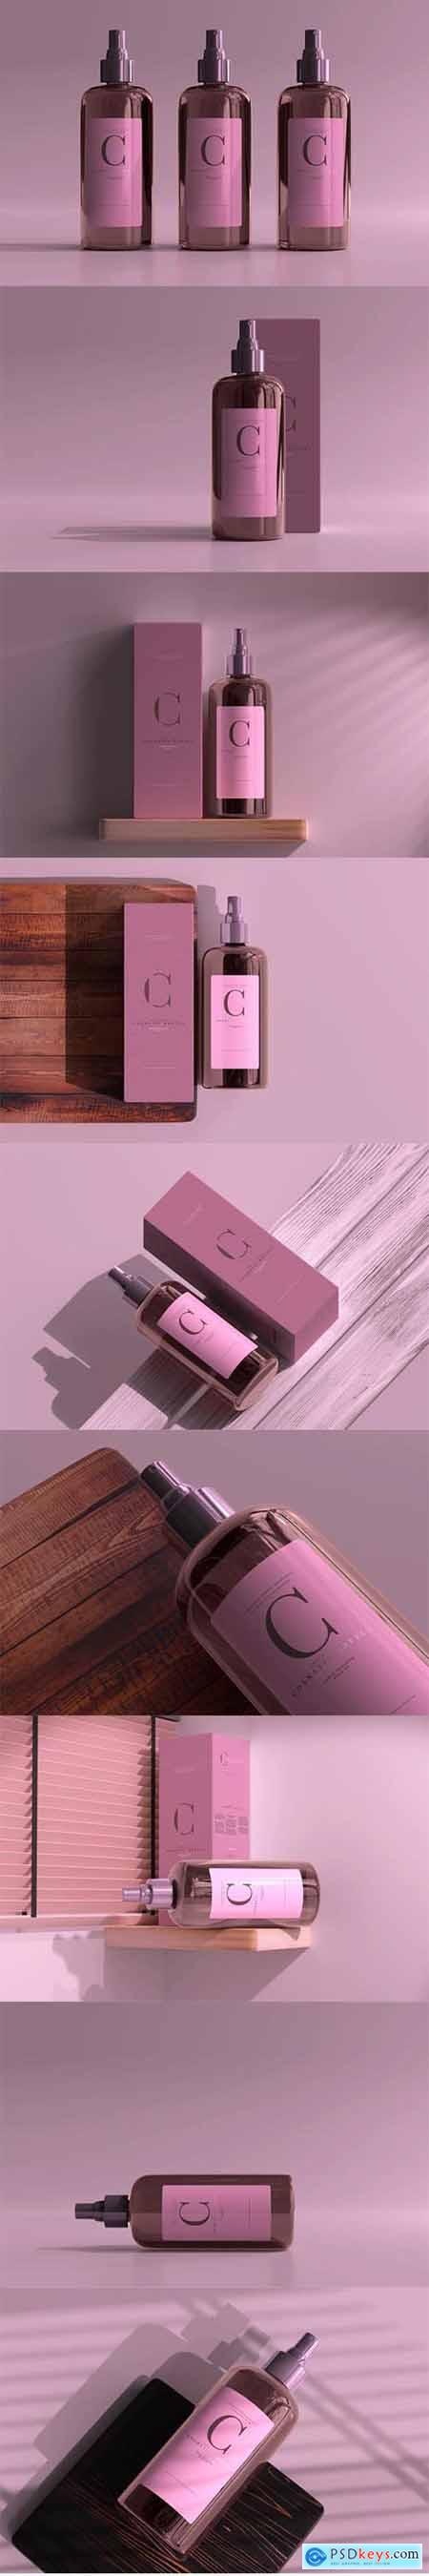 Amber glass cosmetic spray bottle mockup vol.2